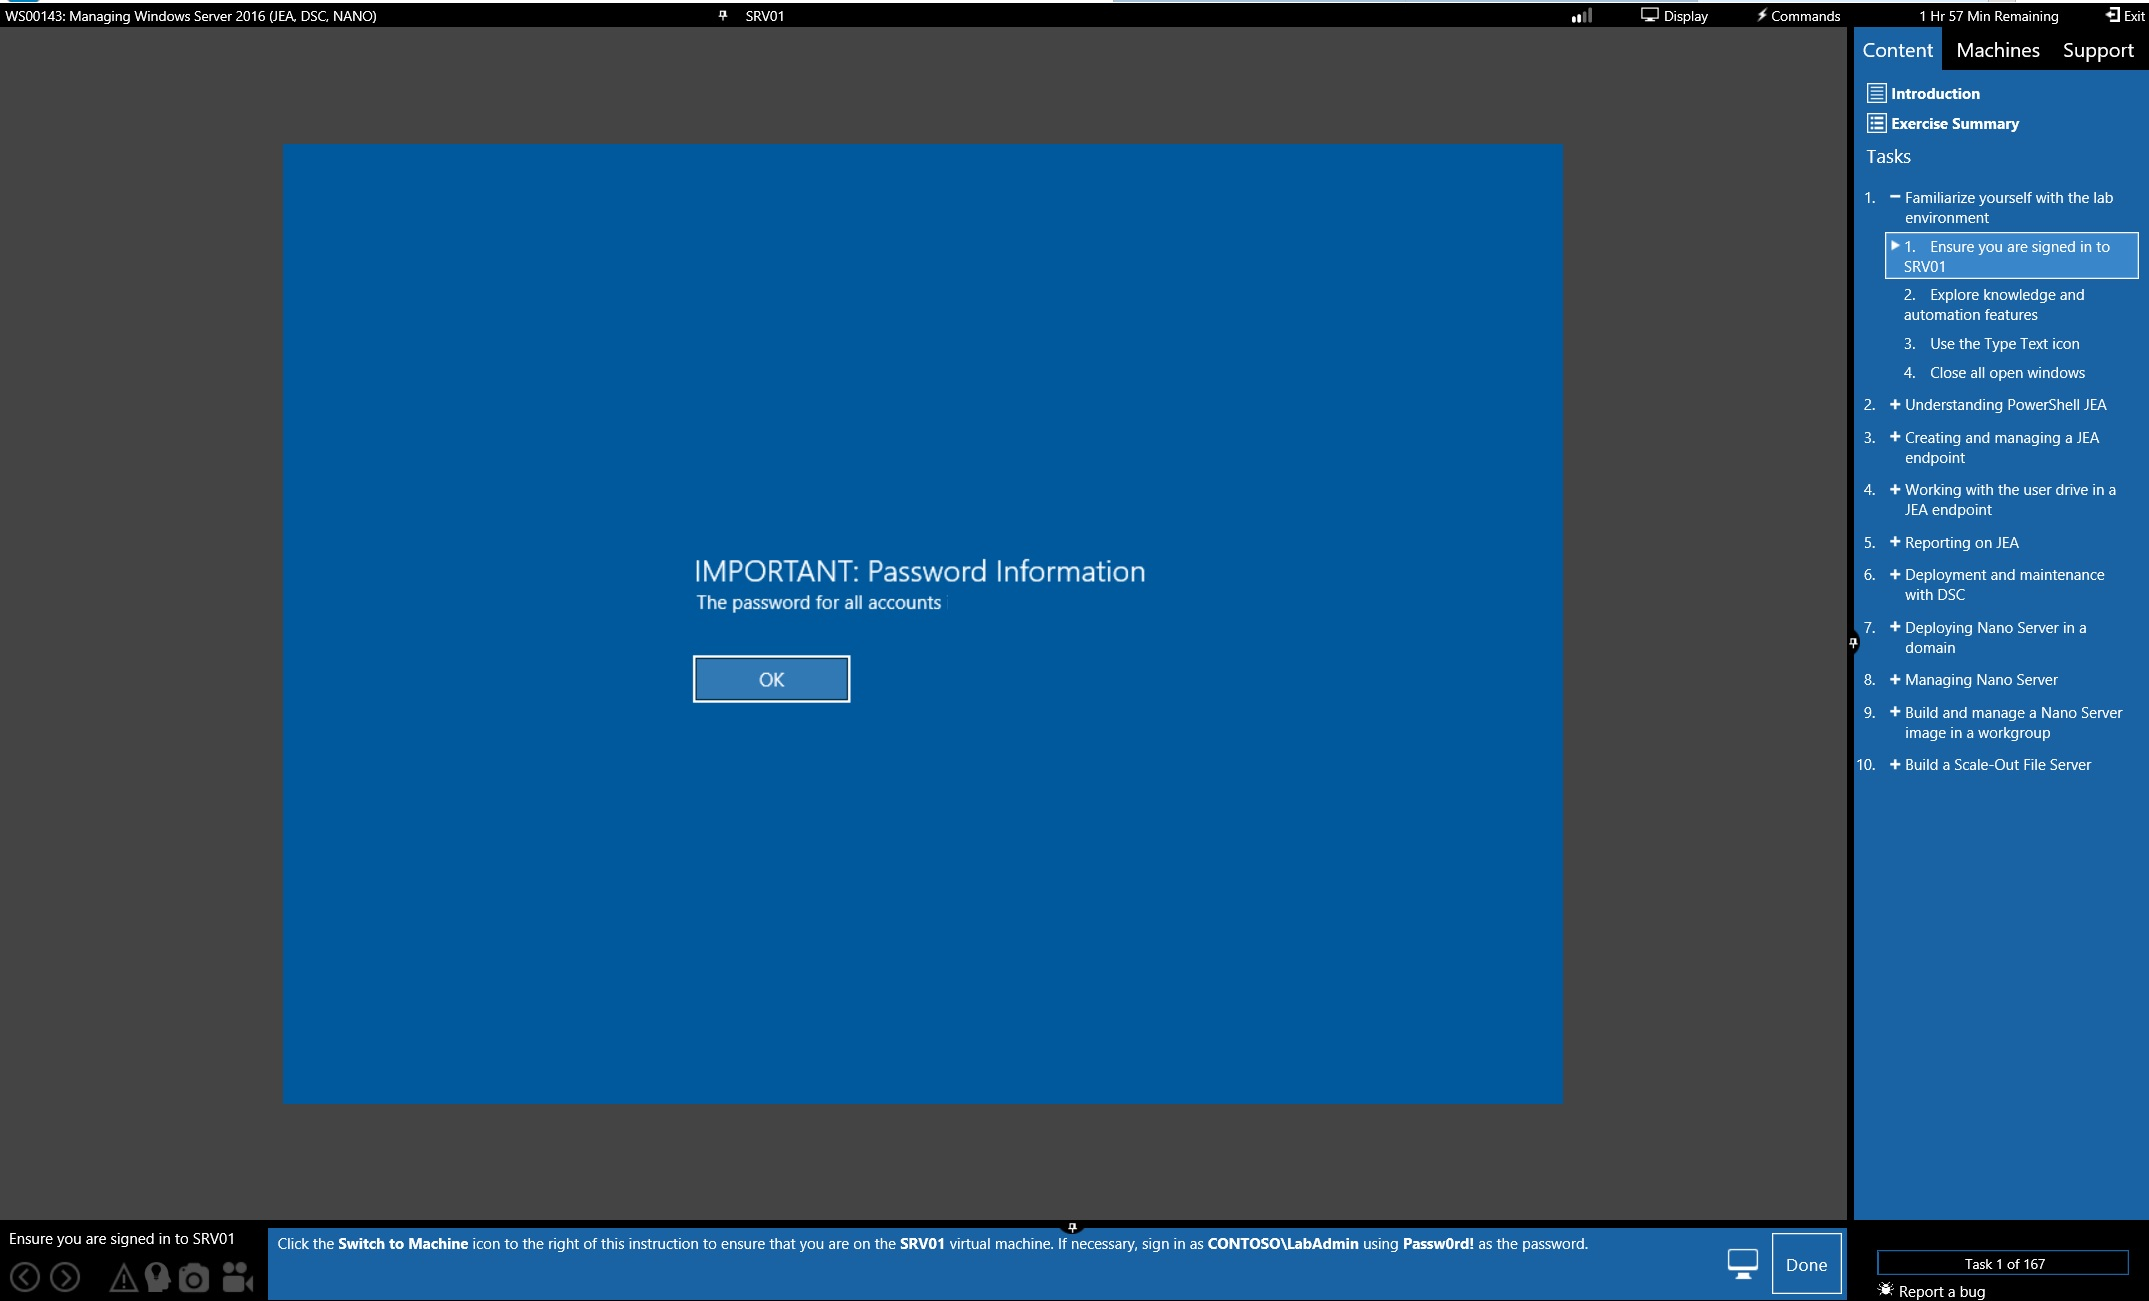 Free Windows Server 2016 Virtual Labs  #education. Invisalign Before After Medical Detox Seattle. Convert Word To Excel Online. How To Secure Your Wireless Router. Travel Medicine Philadelphia. Business Class To Europe Associate Arts Degree. Remote Desktop Windows 8 1 Moving Lakeland Fl. University Of Michigan Ann Arbor Application. Credit For Small Business Medicare C Coverage